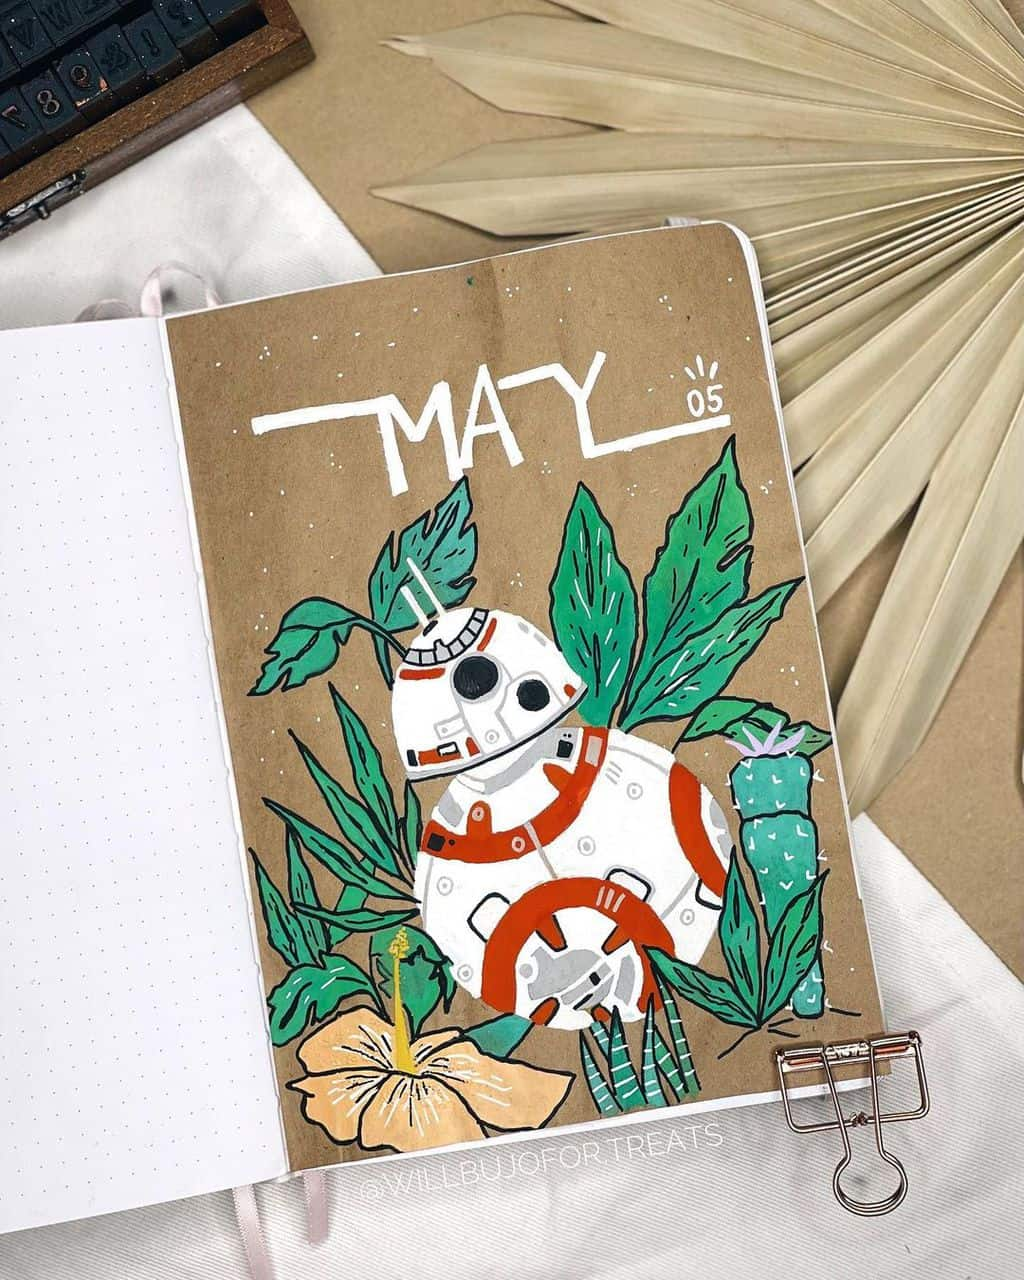 Star Wars Themed Bullet Journal Page by @willbujofor.treats | Masha Plans